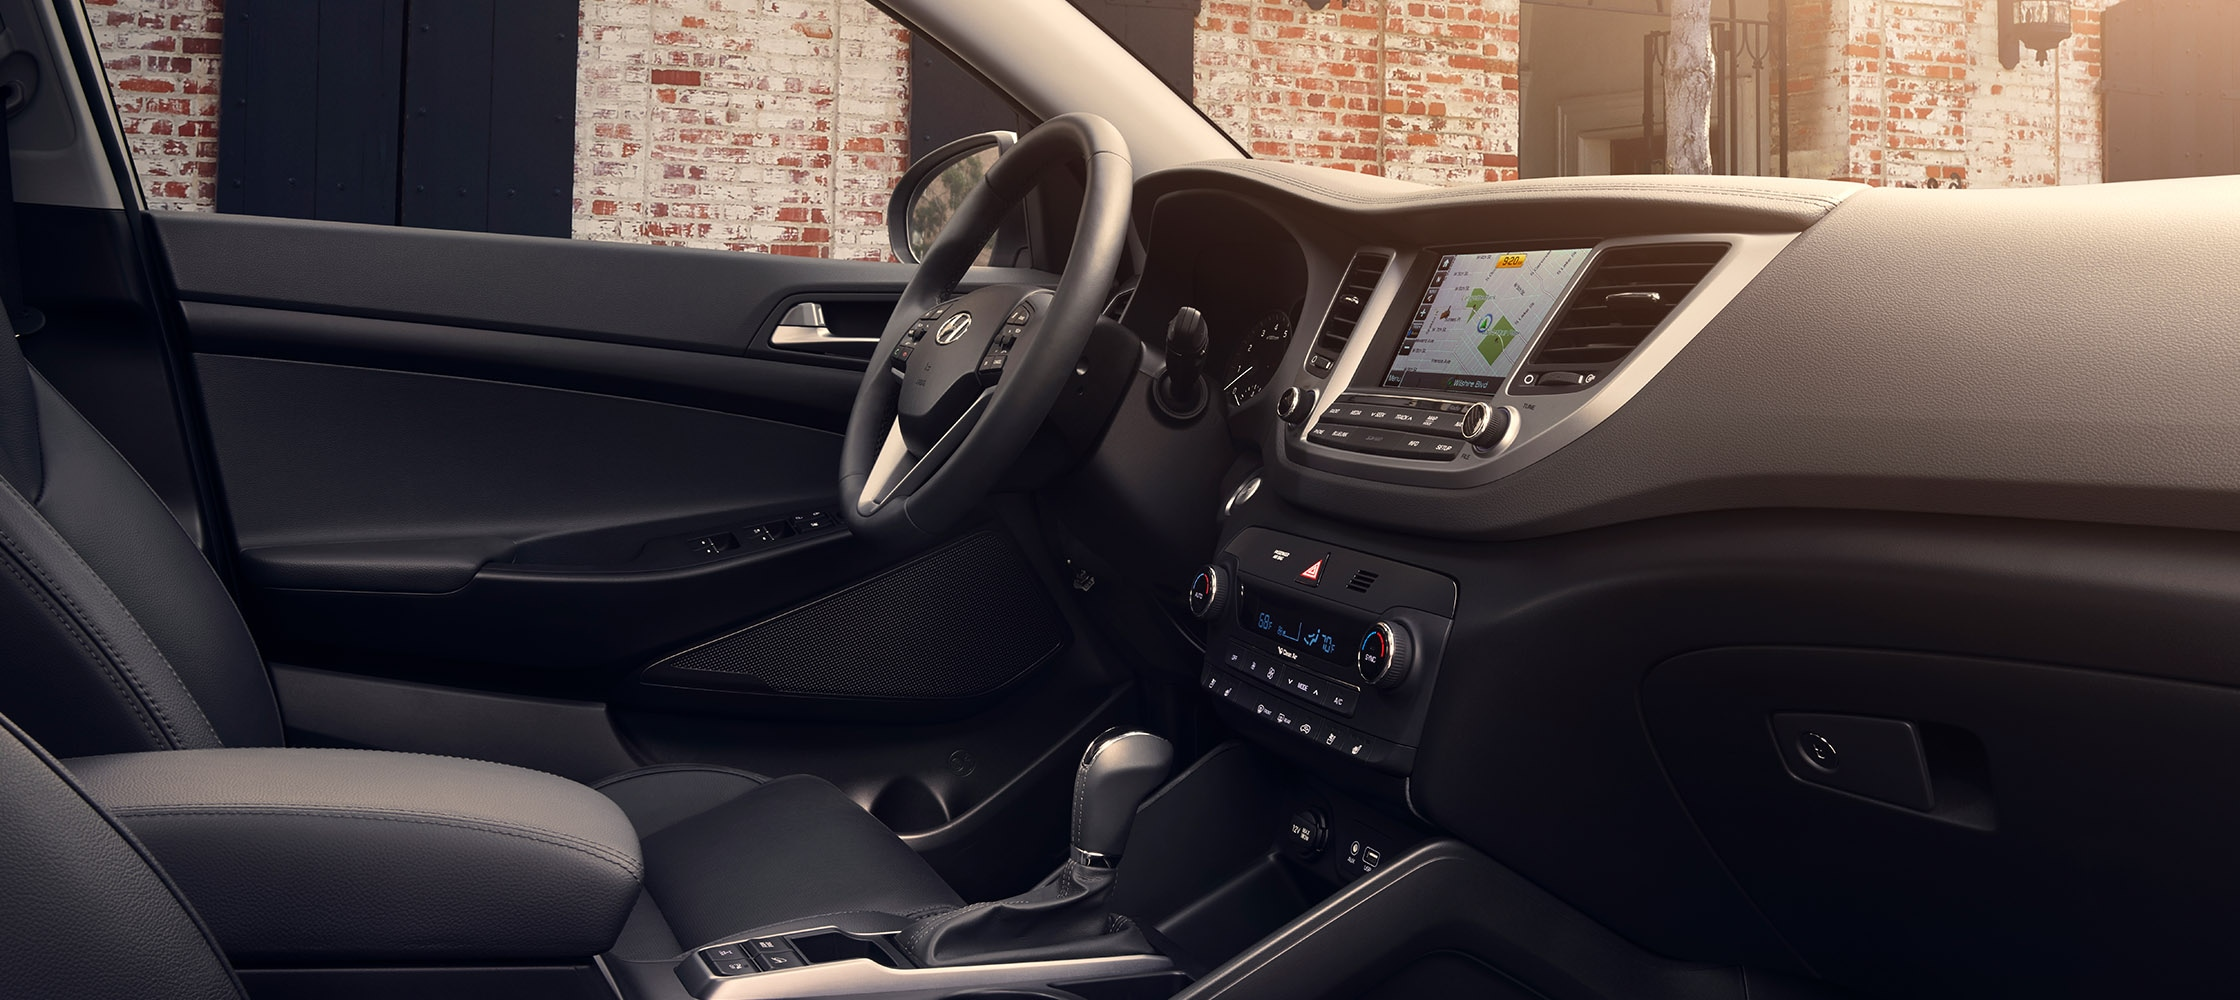 Interior image of Hyundai Tucson 2017 CUV leather interior and high-tech dashboard